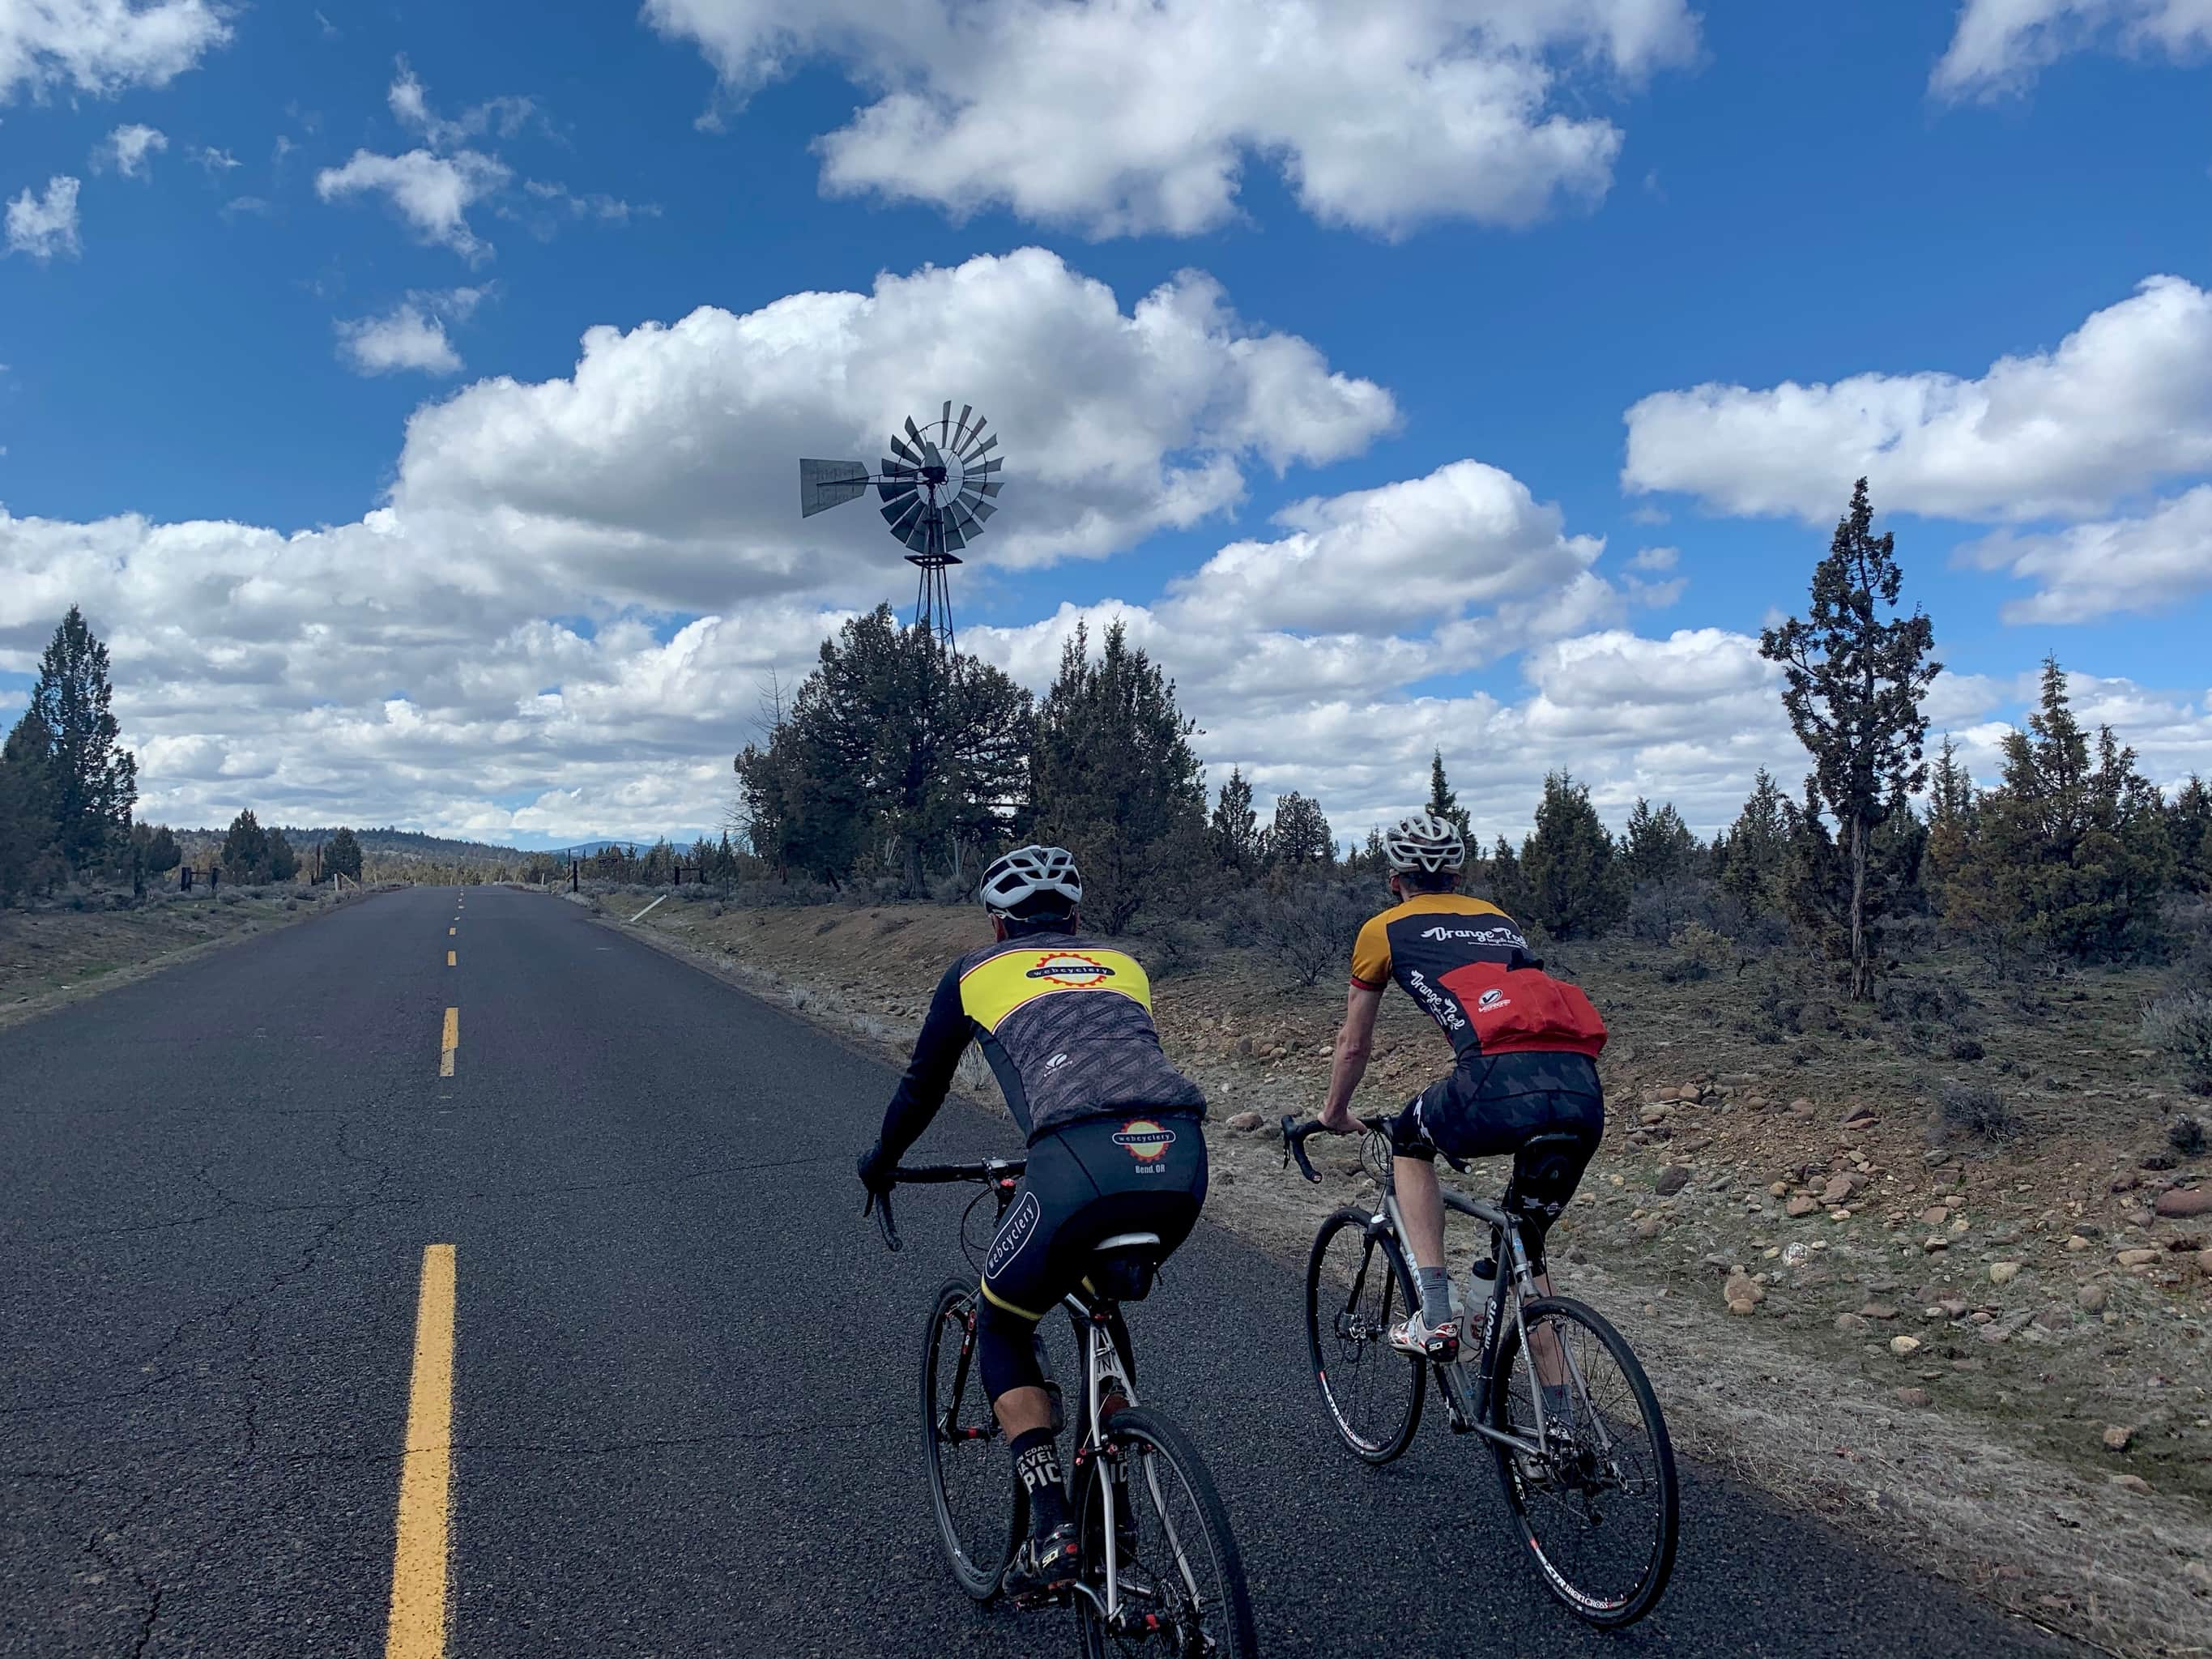 Cyclists on paved road with windmill in background.